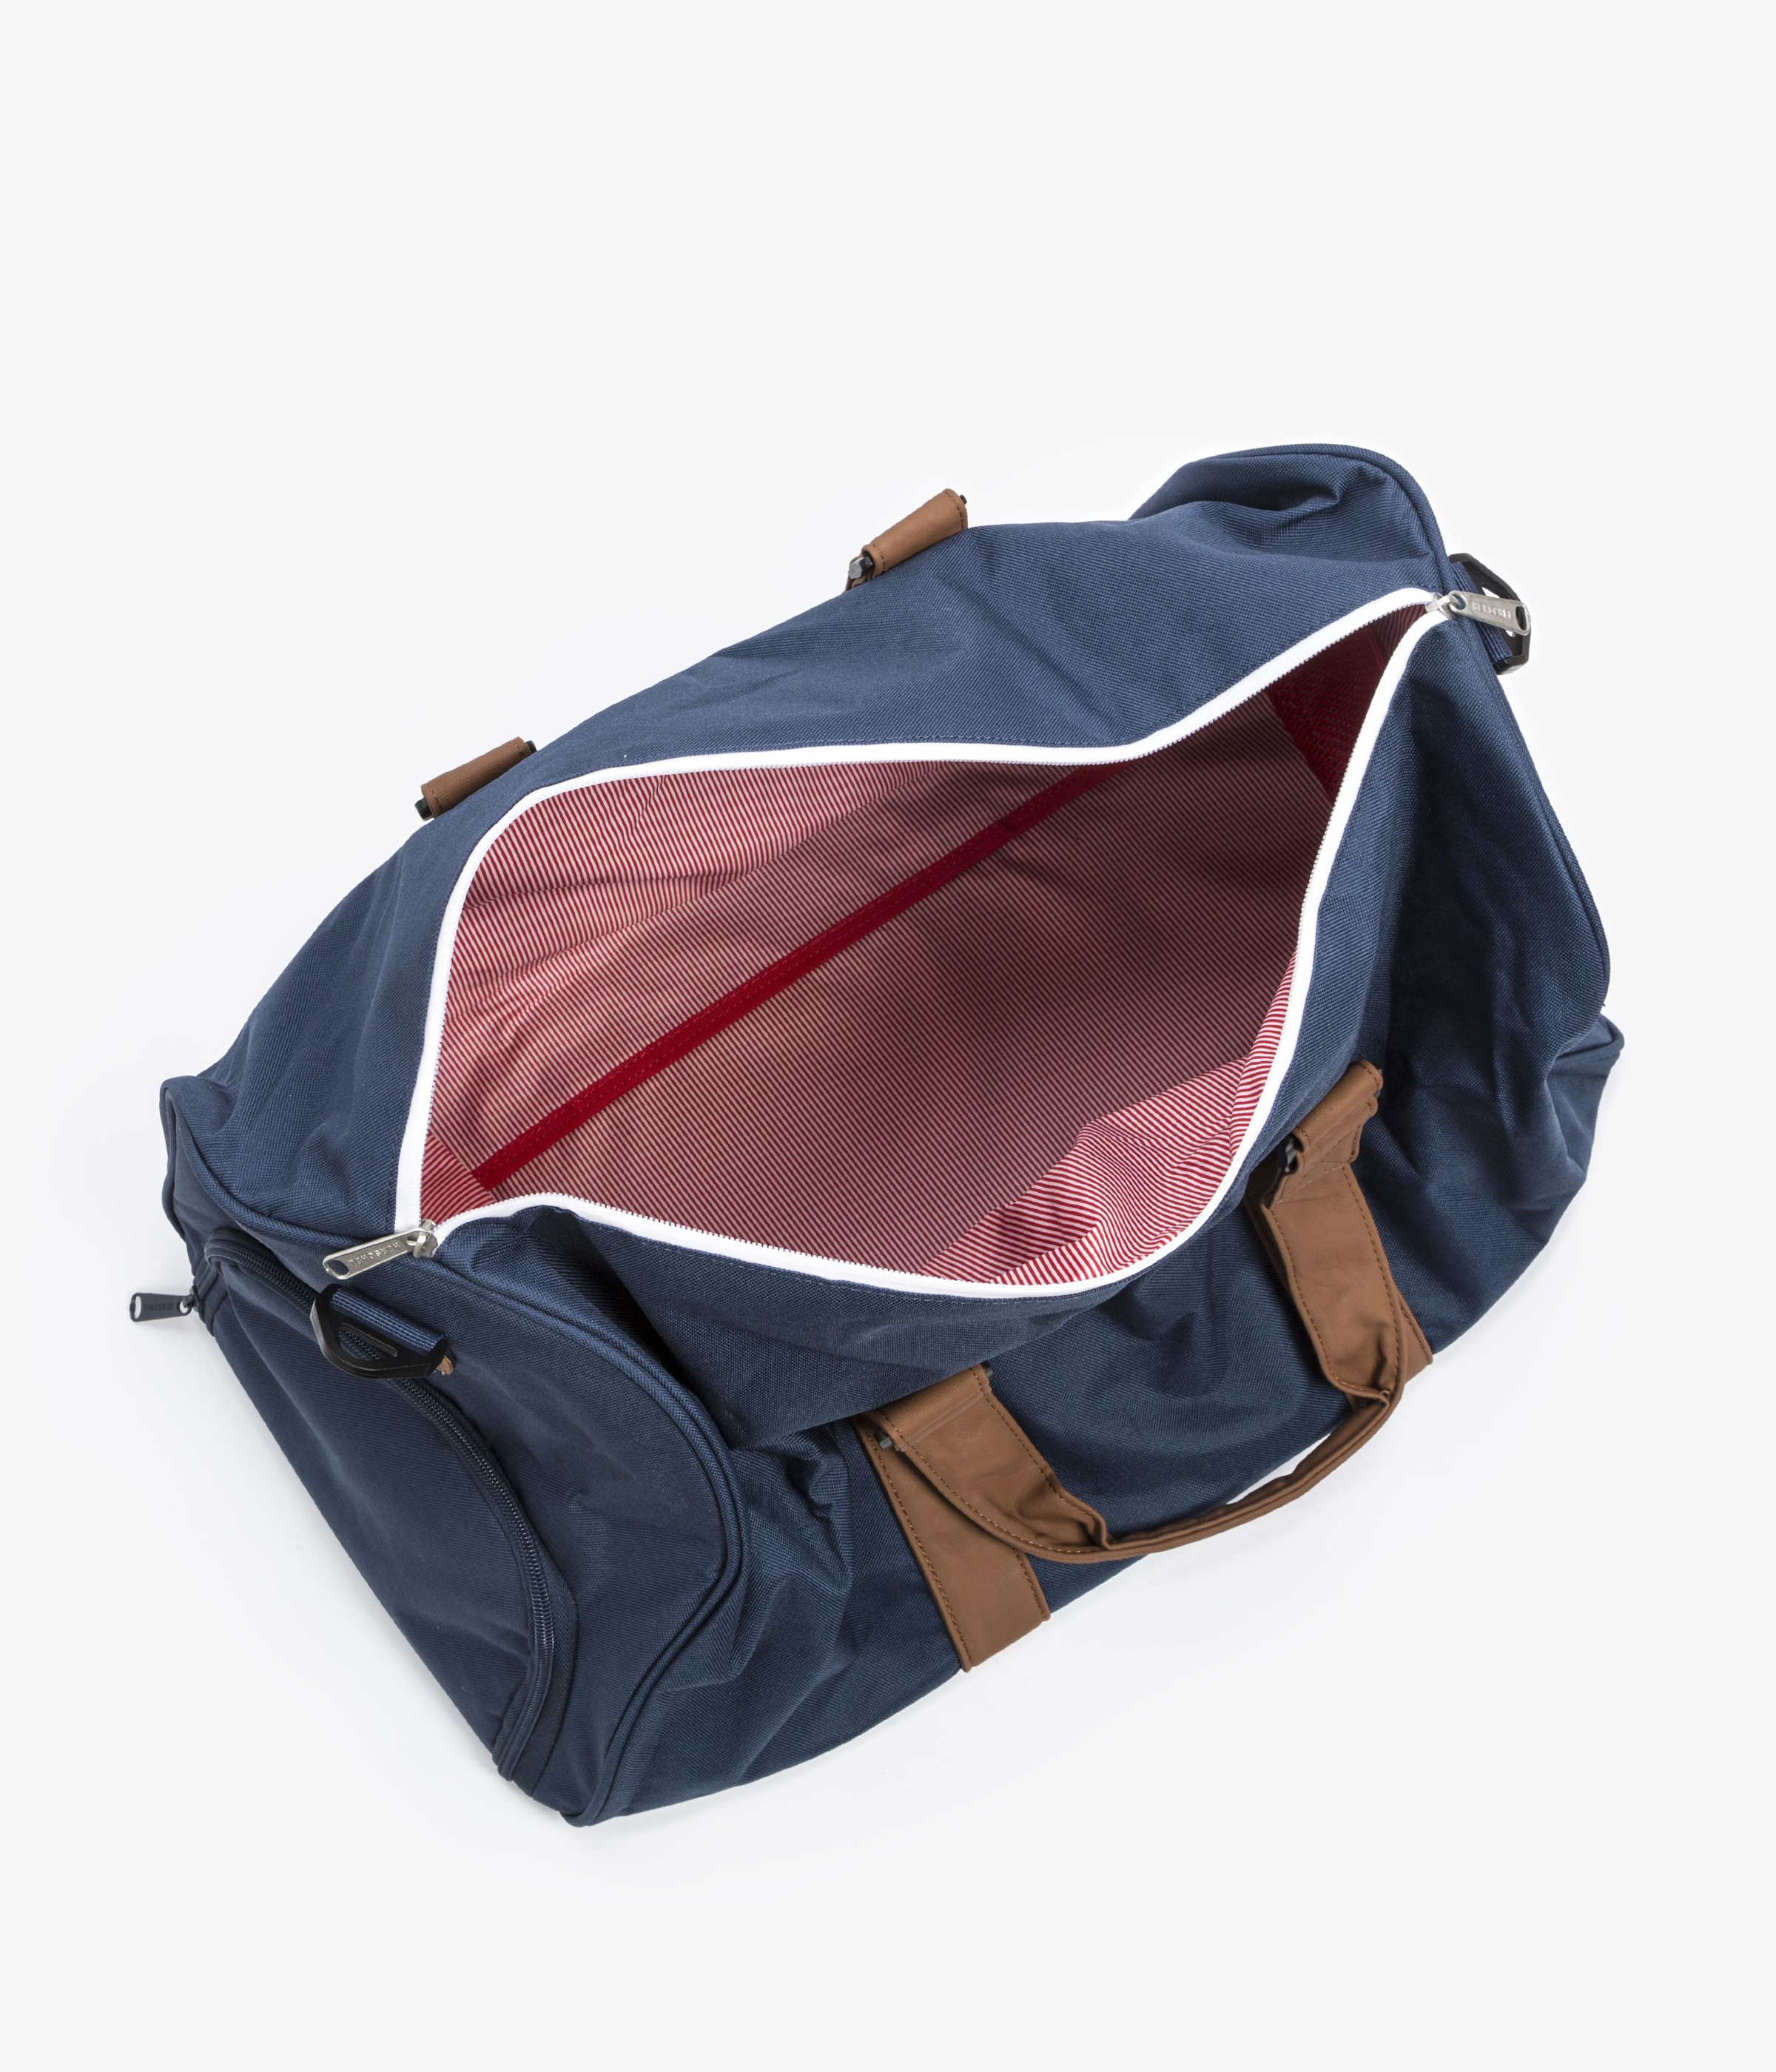 Herschel Duffle Bag | Herschel Supply Co Duffel Bag | Hershel Duffle